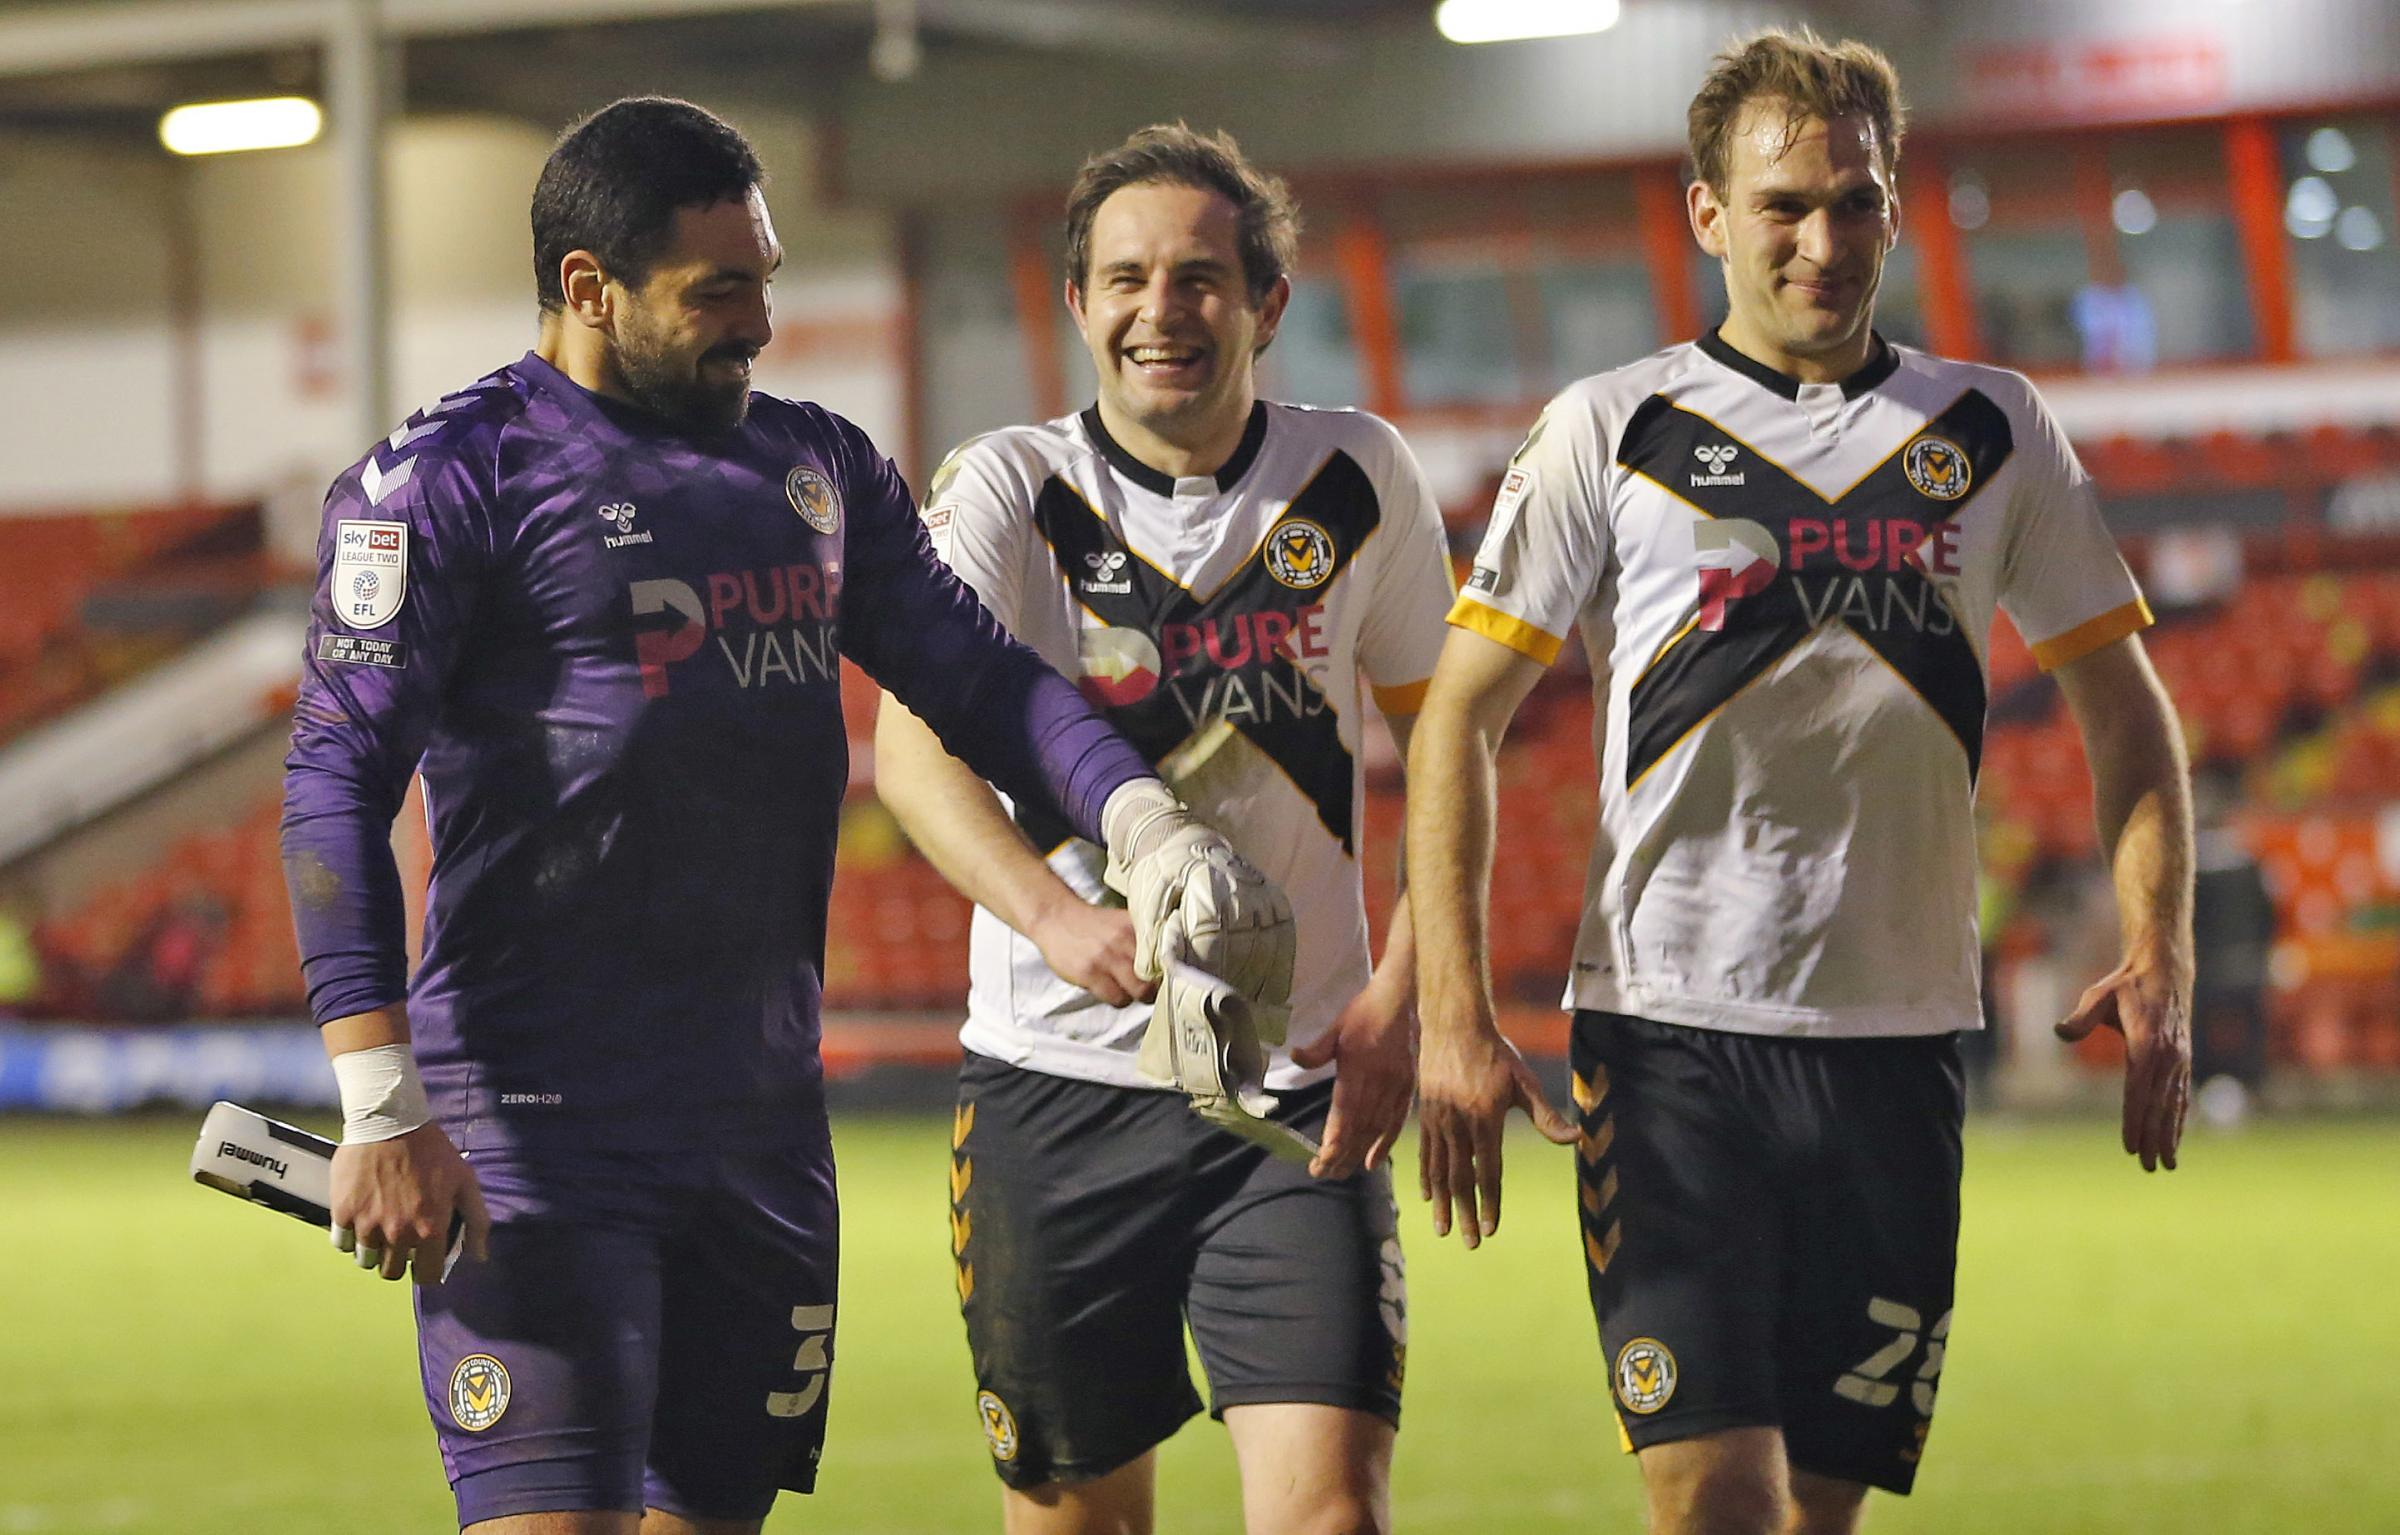 GUTSY: Nick Townsend, Matty Dolan and Mickey Demetriou after the clean sheet at Walsall